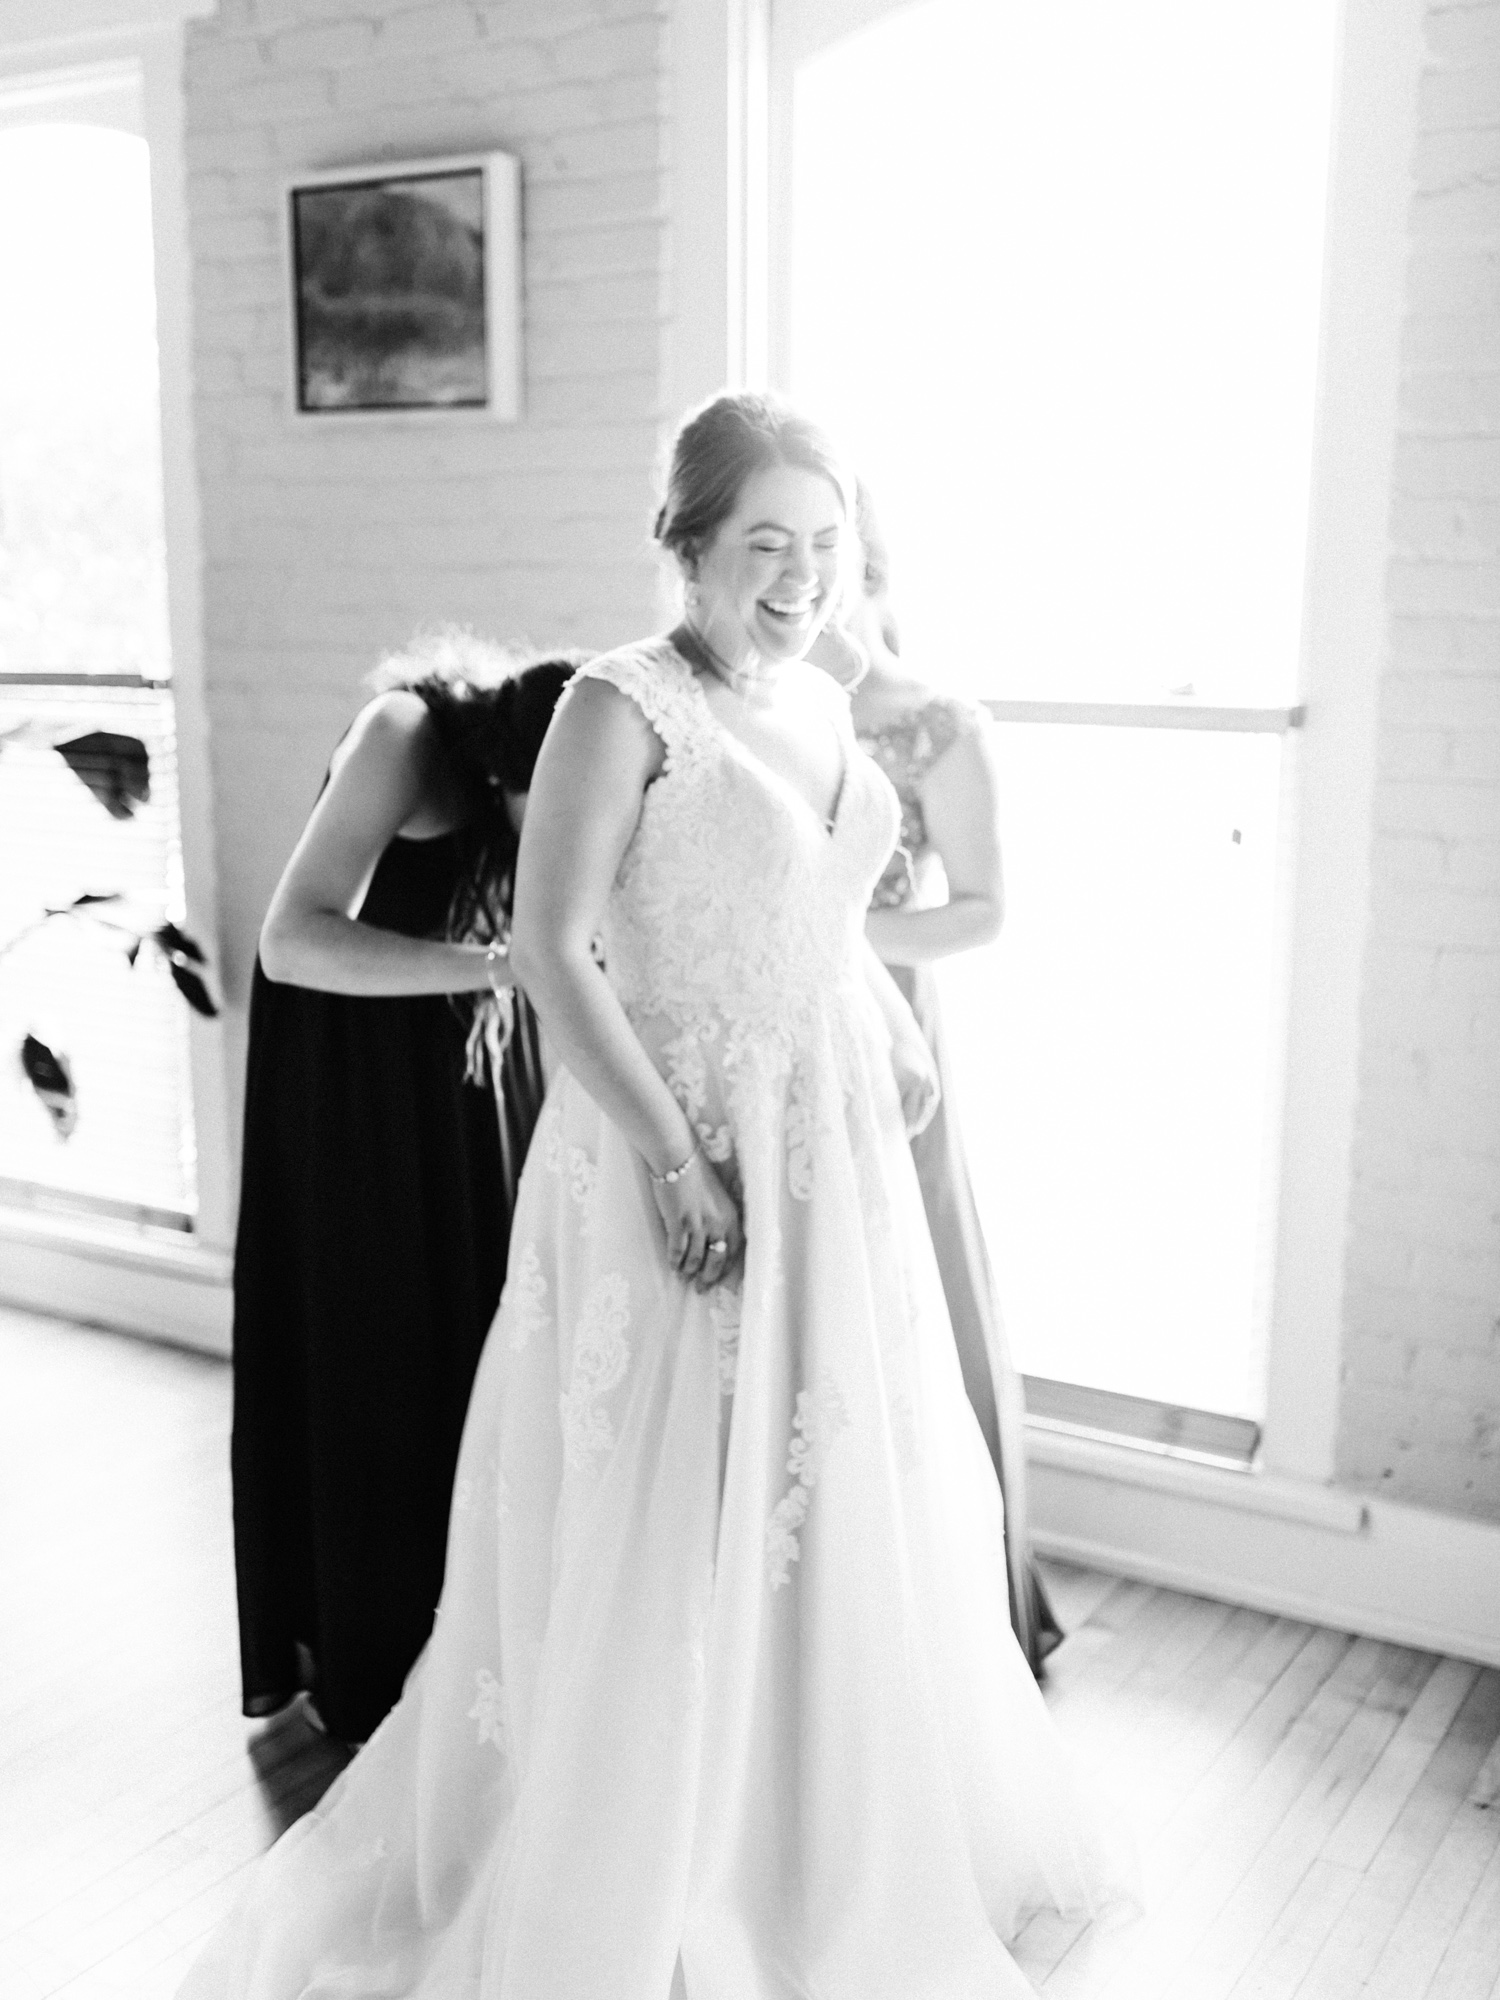 an excited bride smiles as bridesmaids help tie the back of her wedding gown